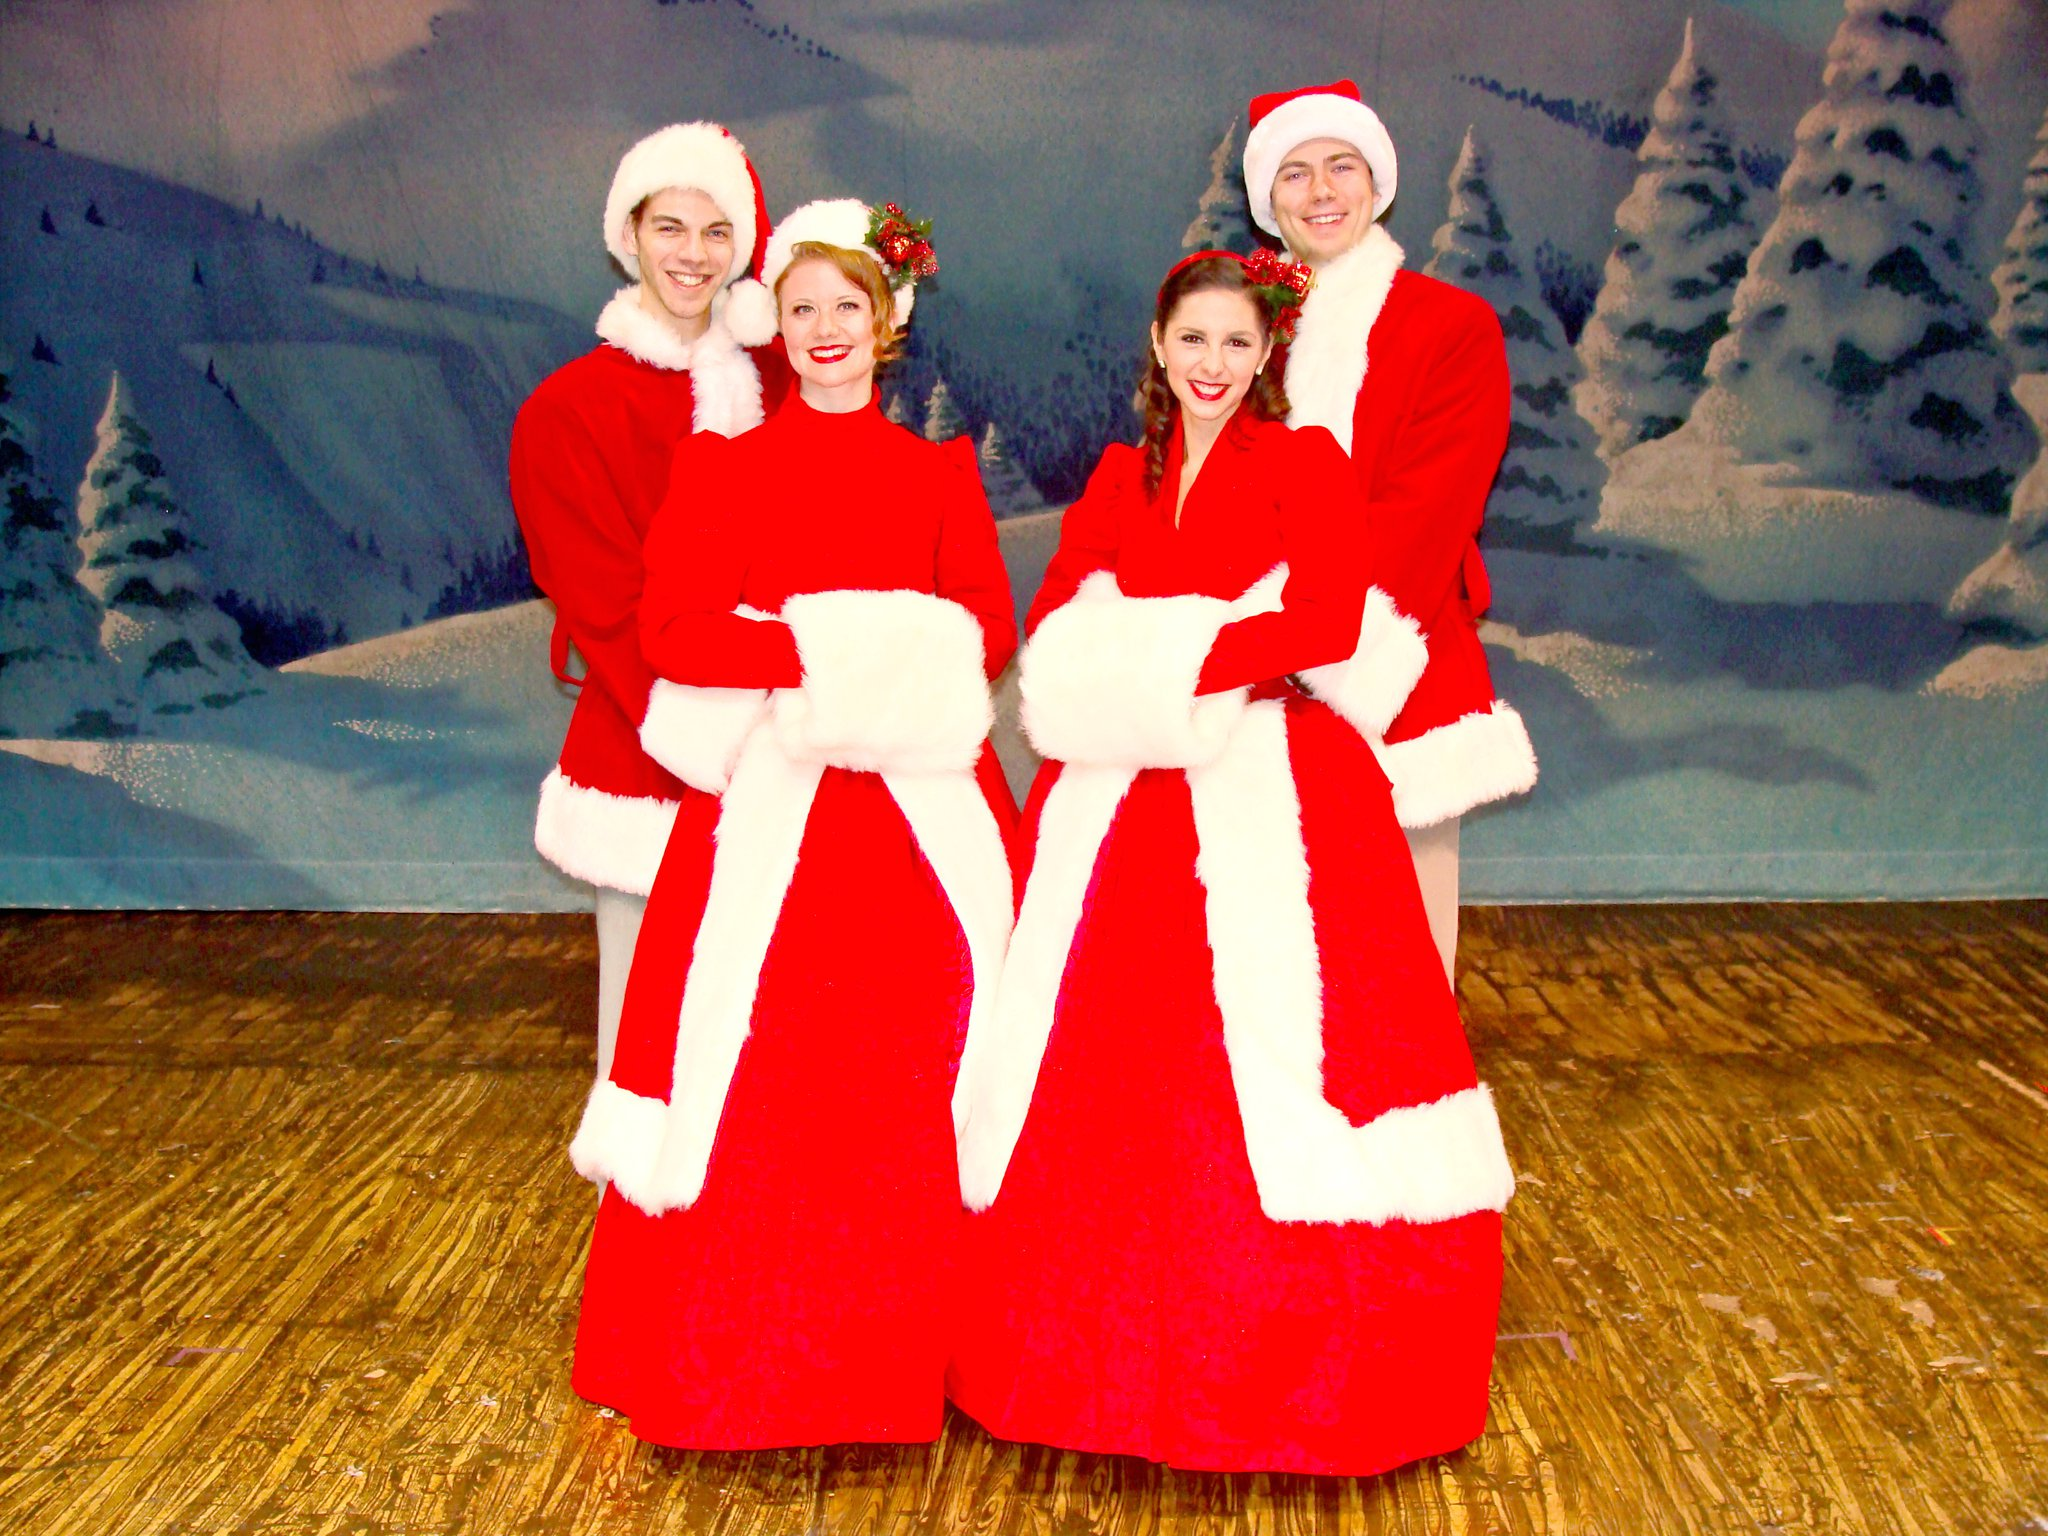 Will We Have A White Christmas This Year 2020 45342 La Comedia presents holiday classic 'White Christmas'